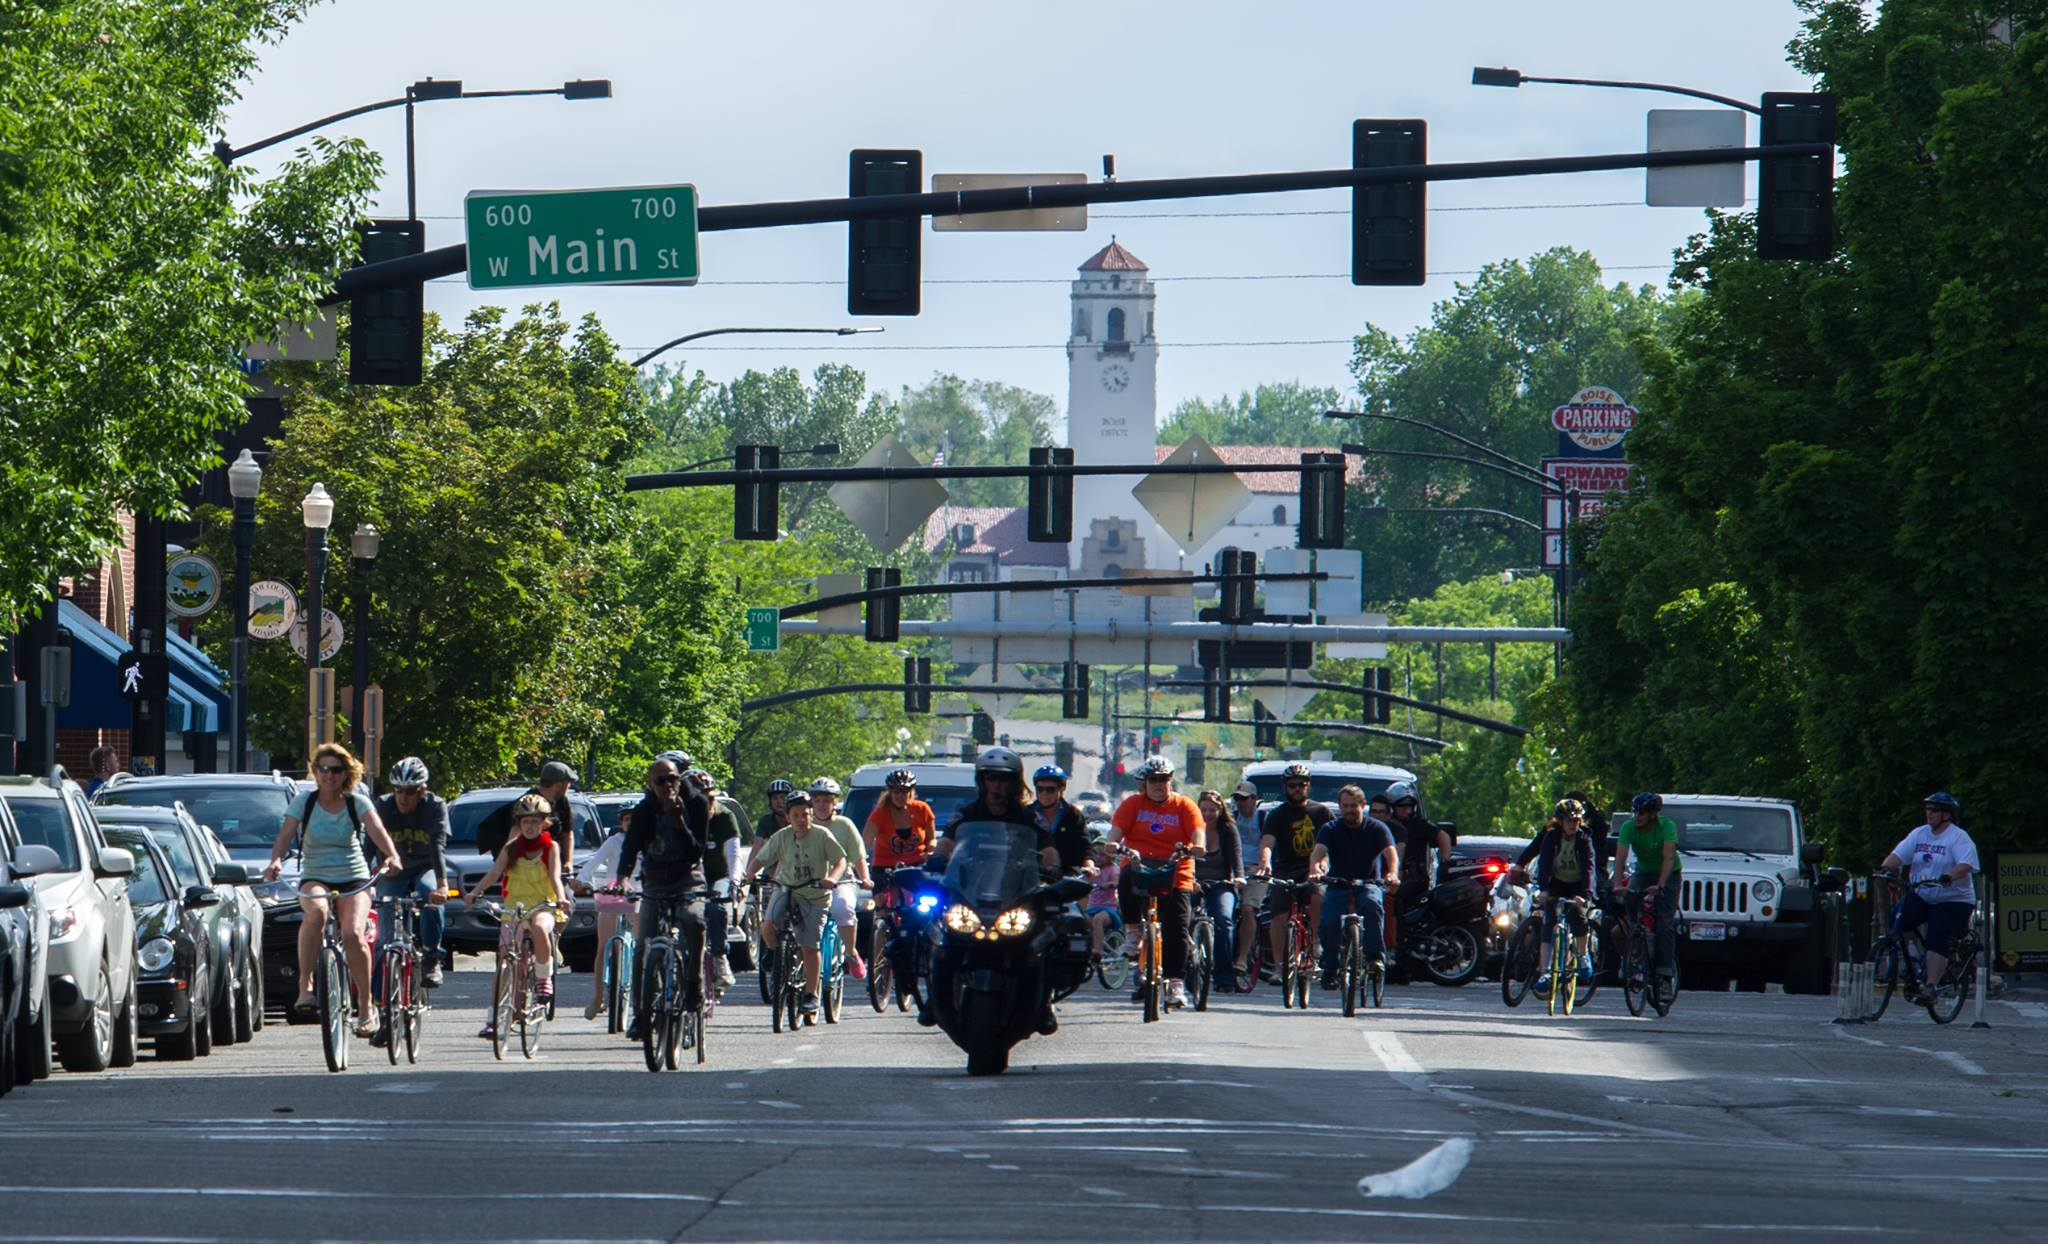 Pedal Power Parade - Saturday, May 18 at 2 PM. Meet at the Capitol for a pedal powered parade to the State Street Block Party at ITD Headquarters. Our route will follow some new Low Stress Bikeways identified by ACHD. Watch this page and the Facebook event for updates on this ride.